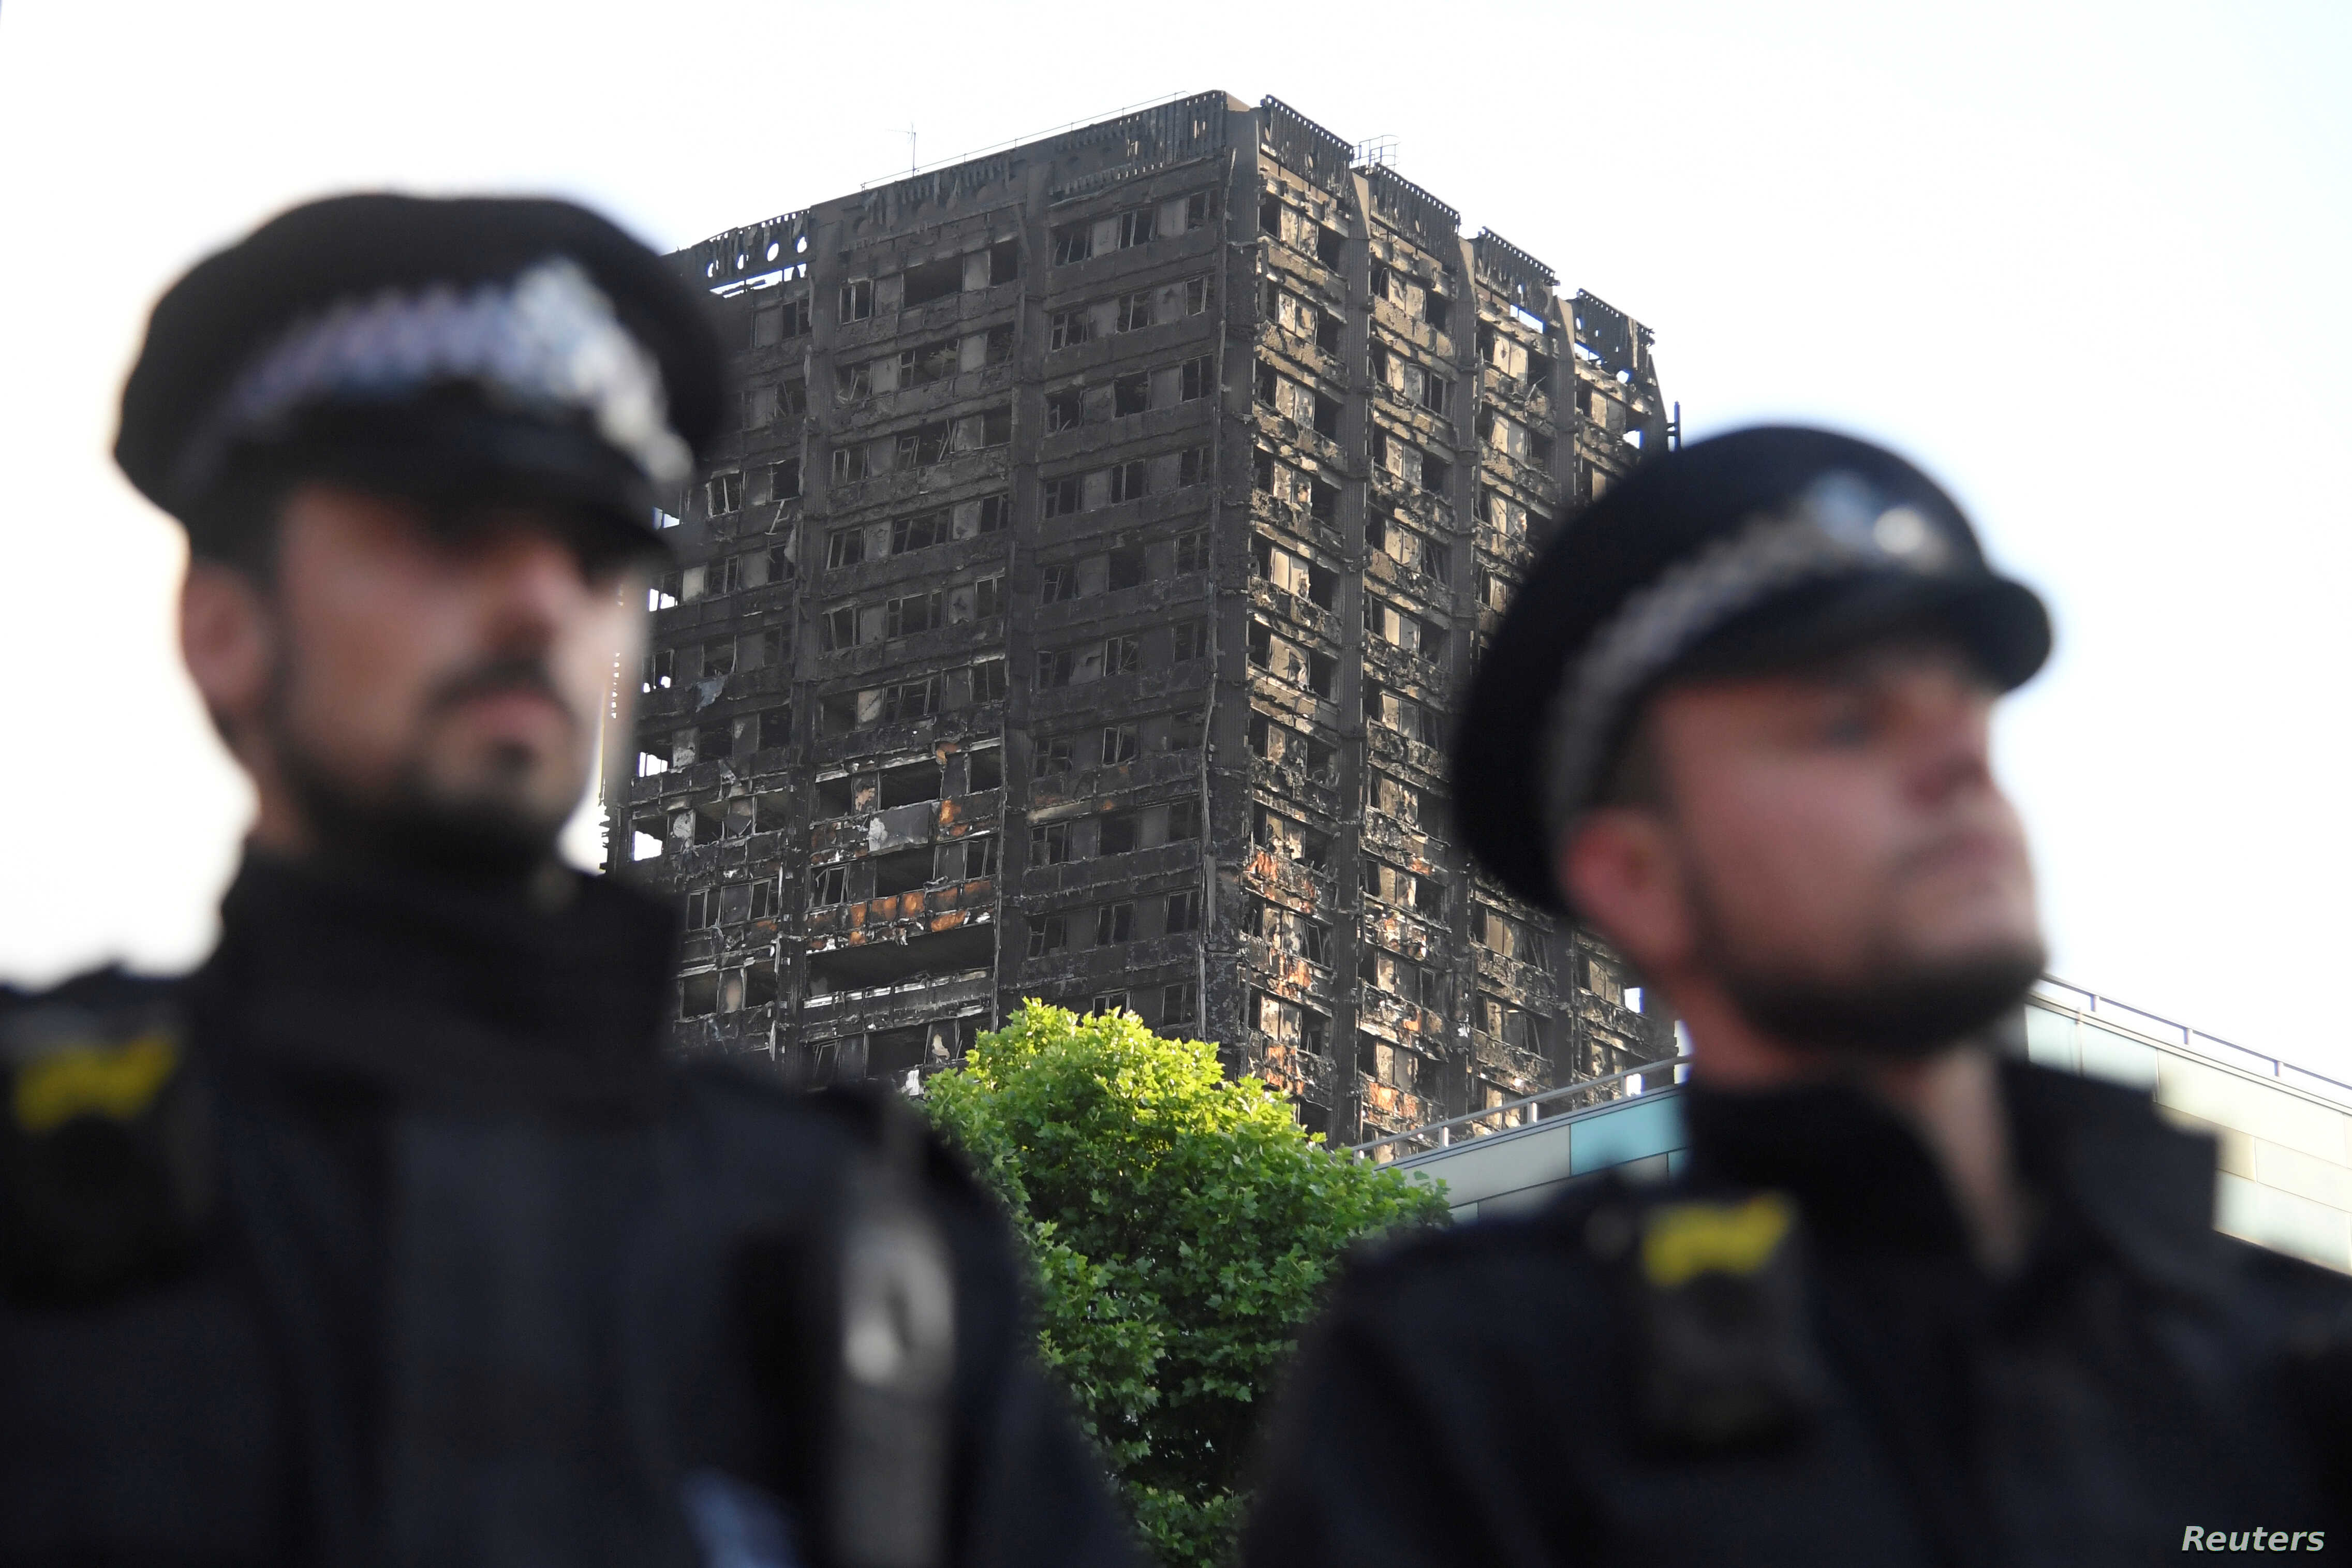 Police officers stand in front of the The Grenfell Tower block that was destroyed by fire, in north Kensington, West London, Britain, June 16, 2017.